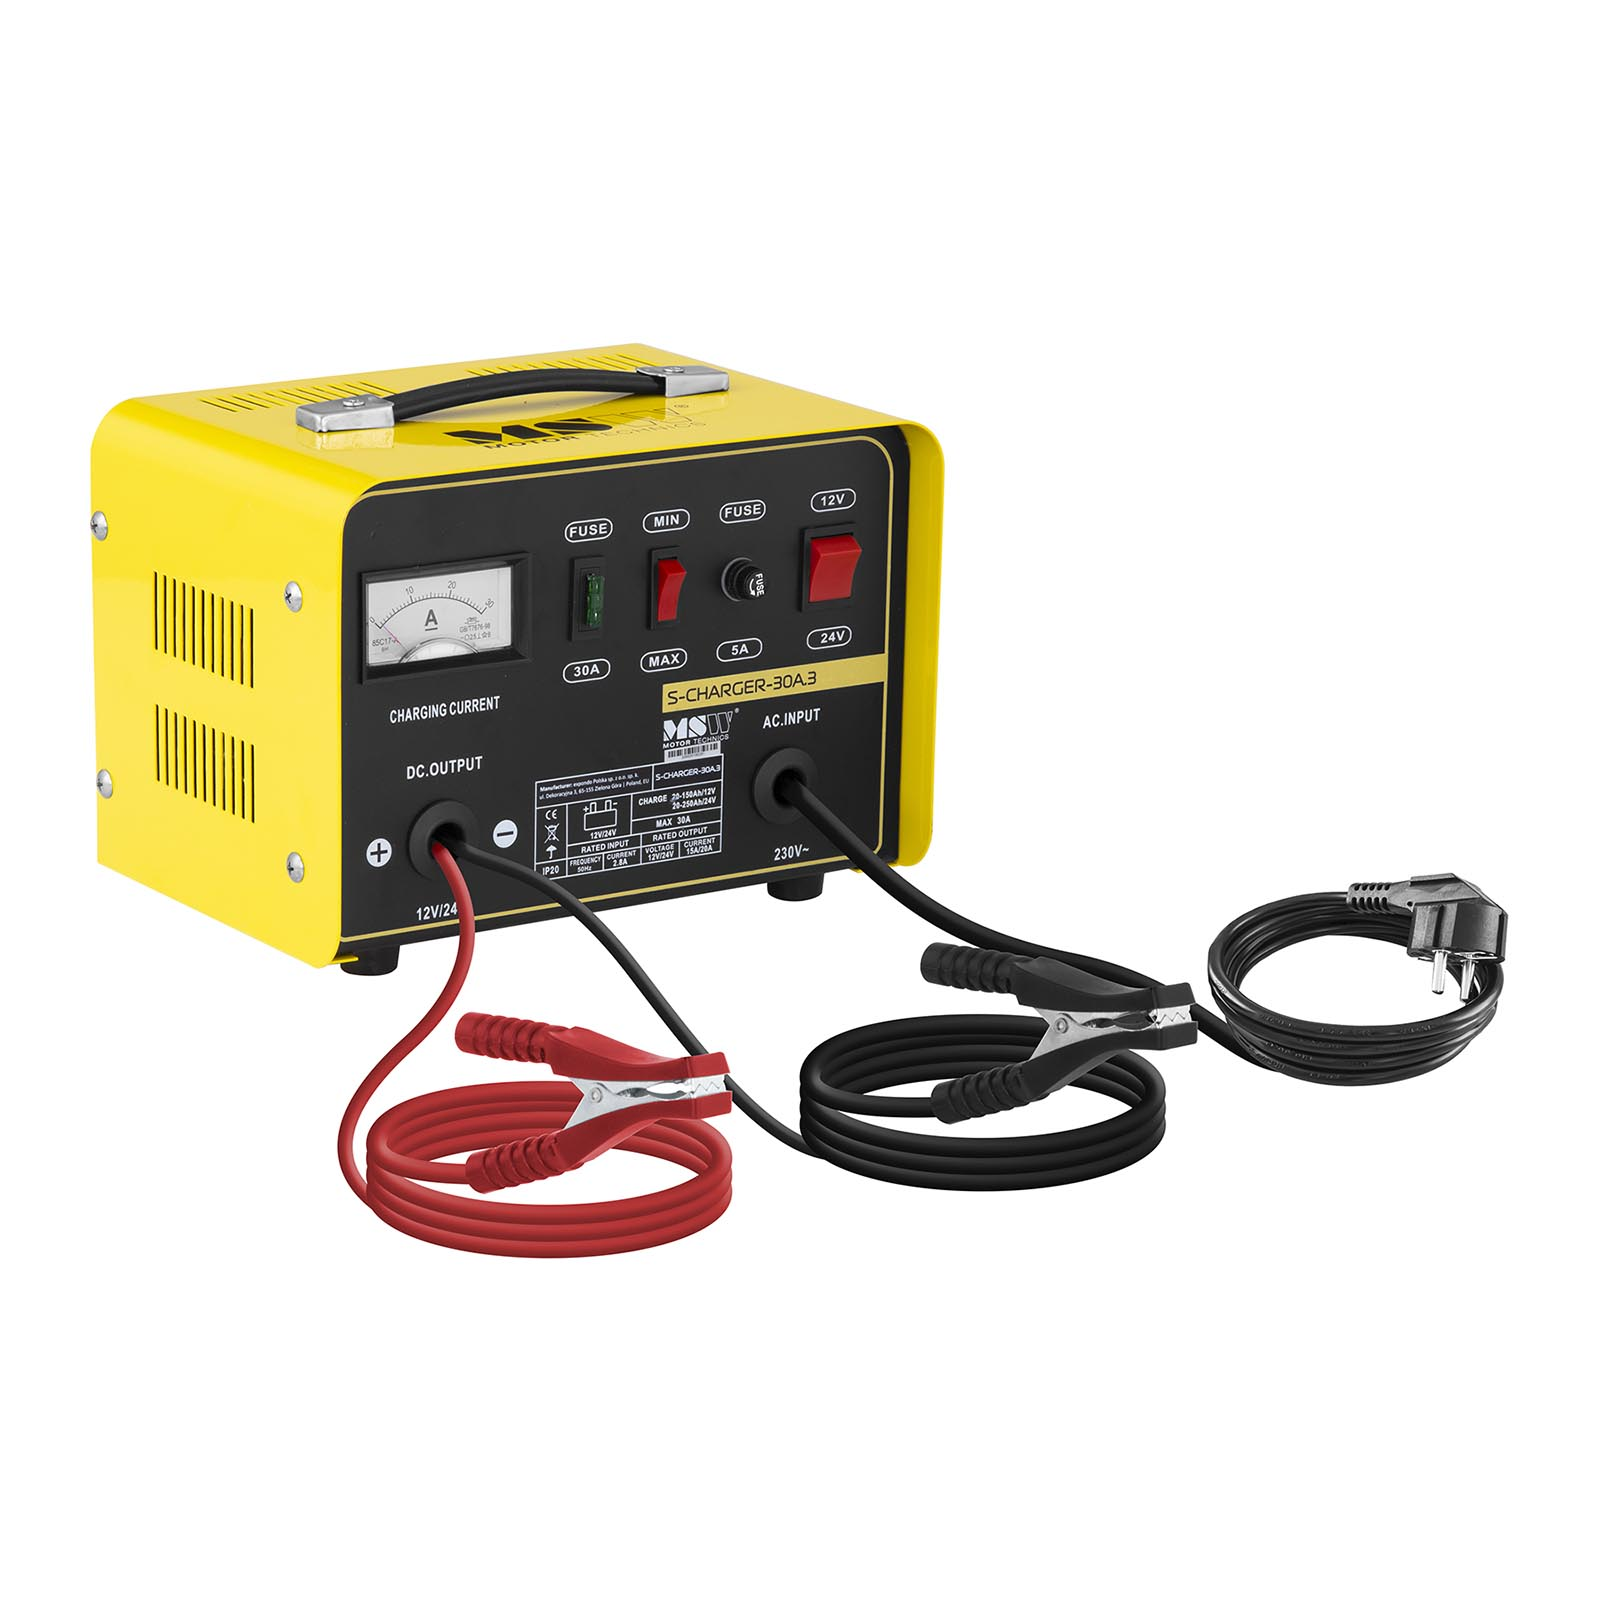 MSW Autobatterie-Ladegerät - 12/24 V - 15/20 A S-CHARGER-30A.3